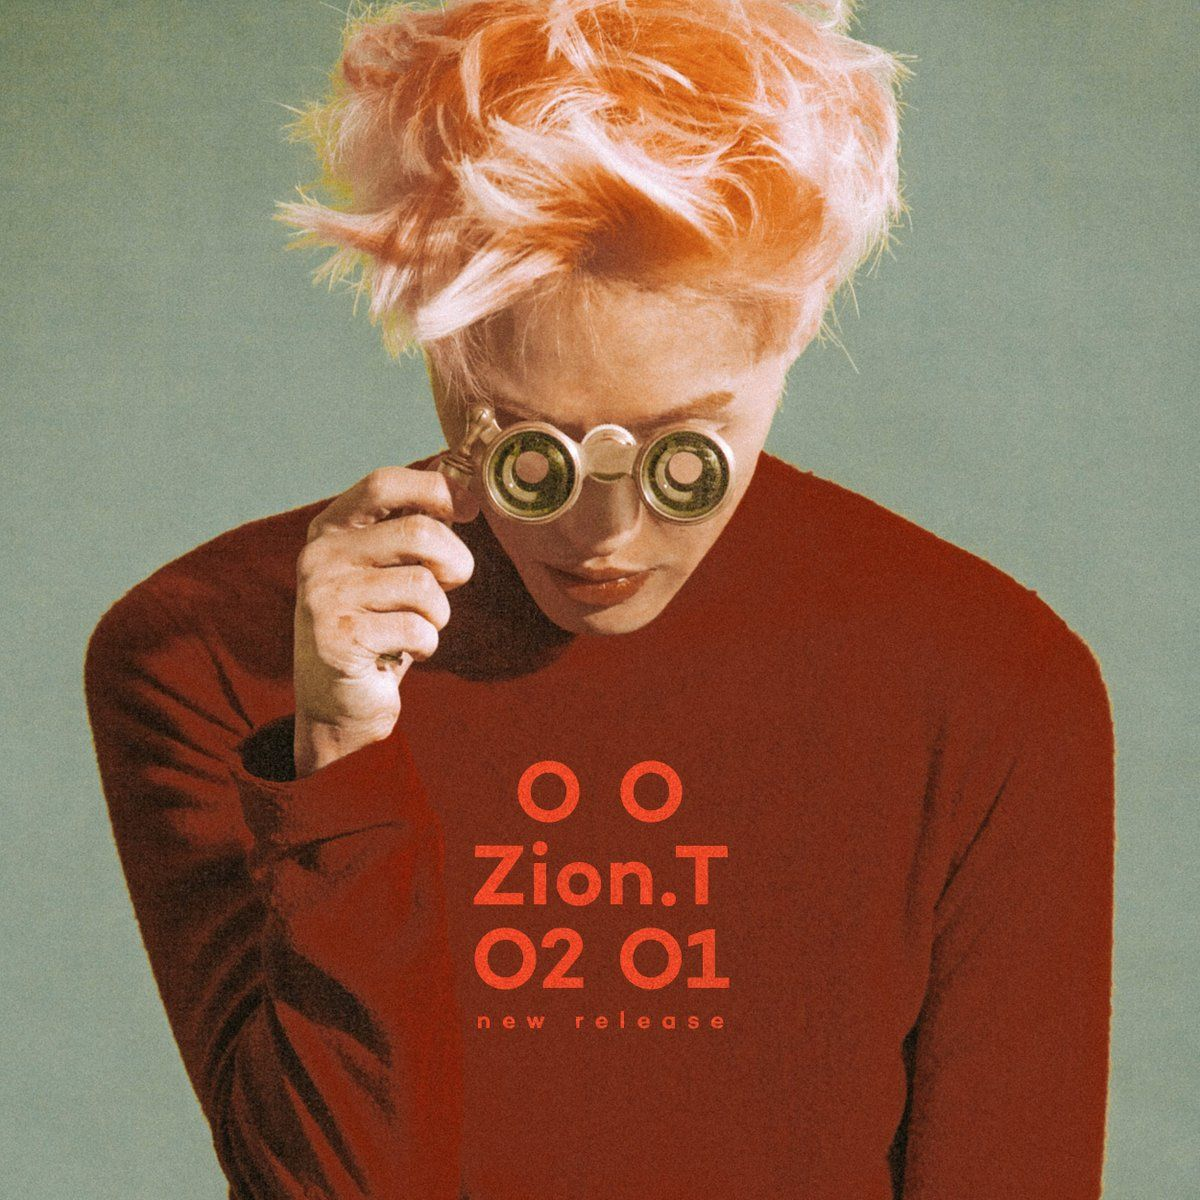 [Zion.T - 'OO'] originally posted by http://yg-life.com  #ziont #자이언티 #OO #oo #THEBLACKLABEL #더블랙레이블 #NEWRELEASE #YG